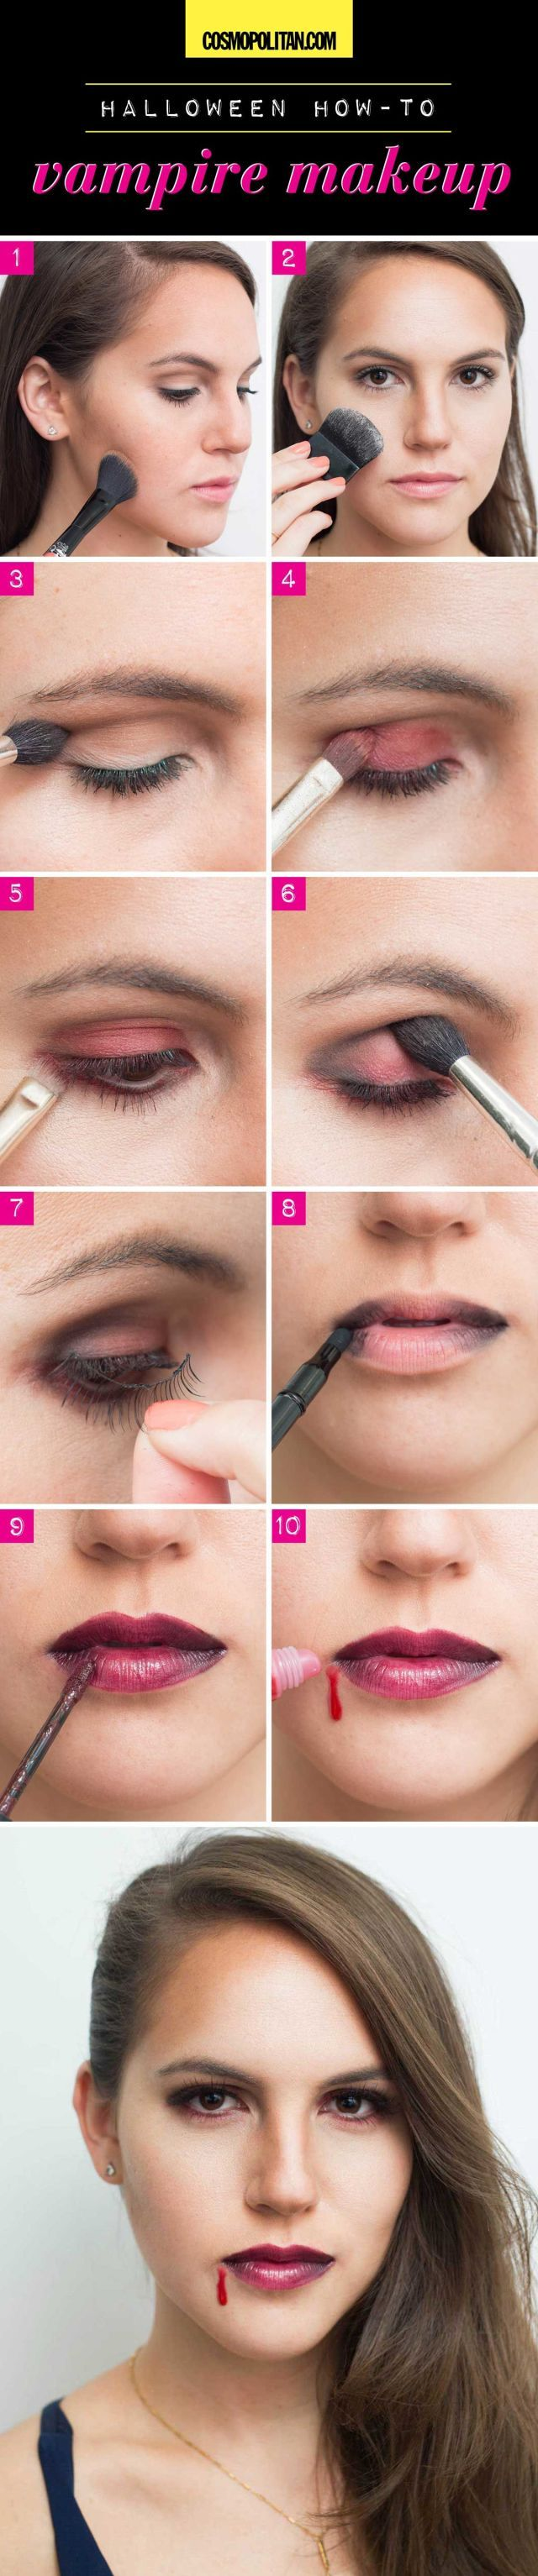 Halloween How-to: Vampire Makeup